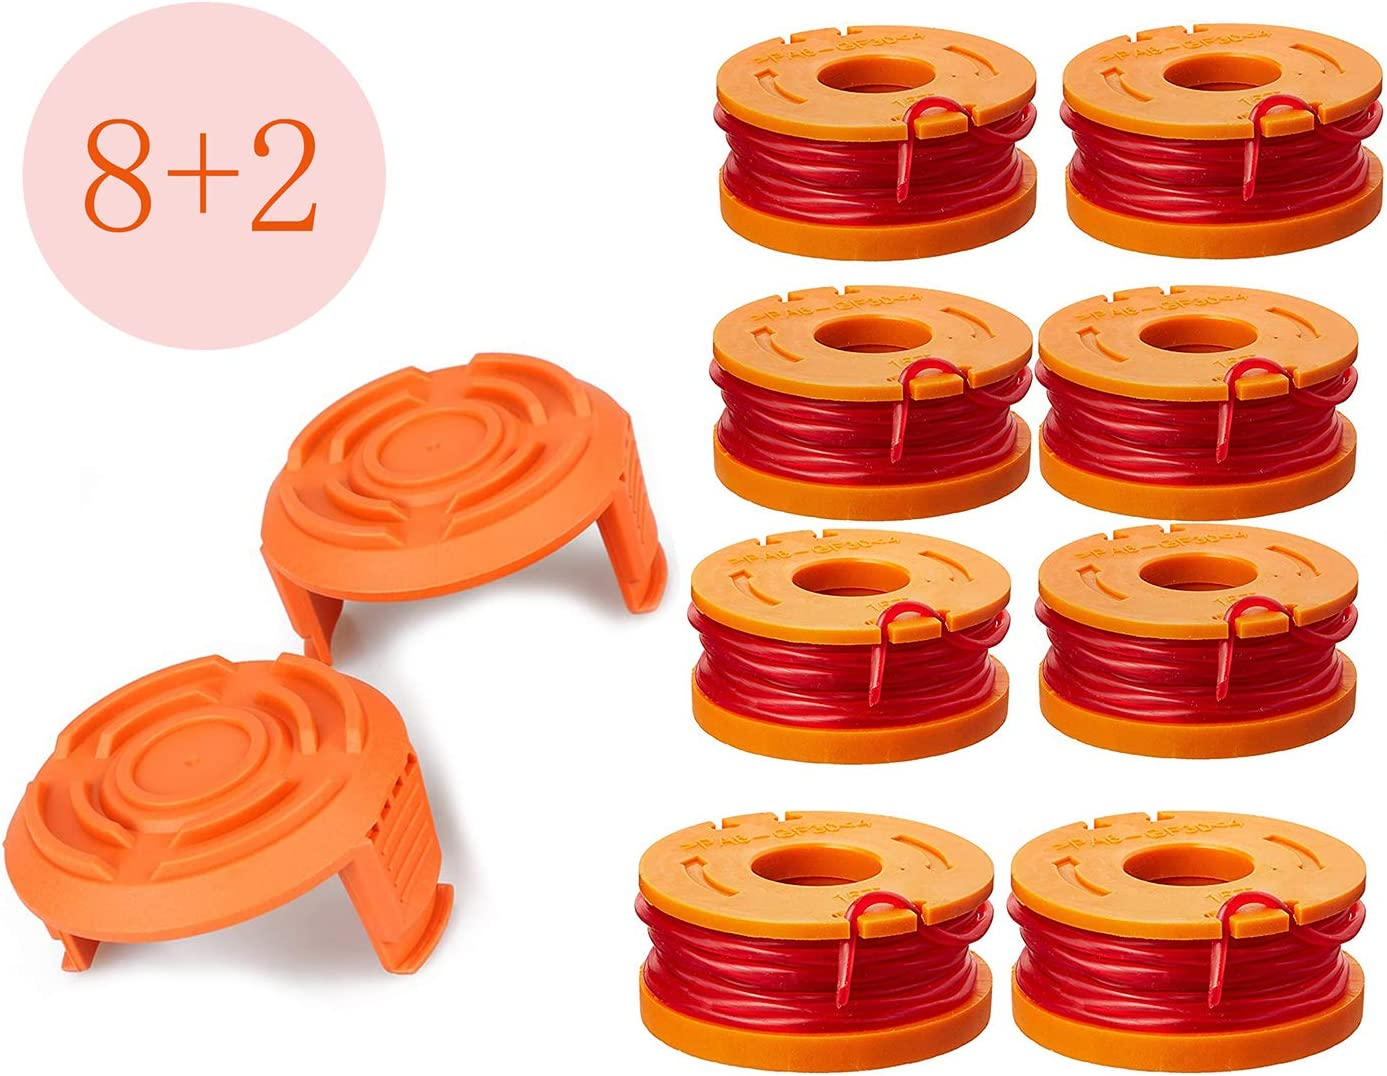 LEIMO Trimmer Spool Line for Worx,Edger Spool Compatible with Worx Trimmer spools...